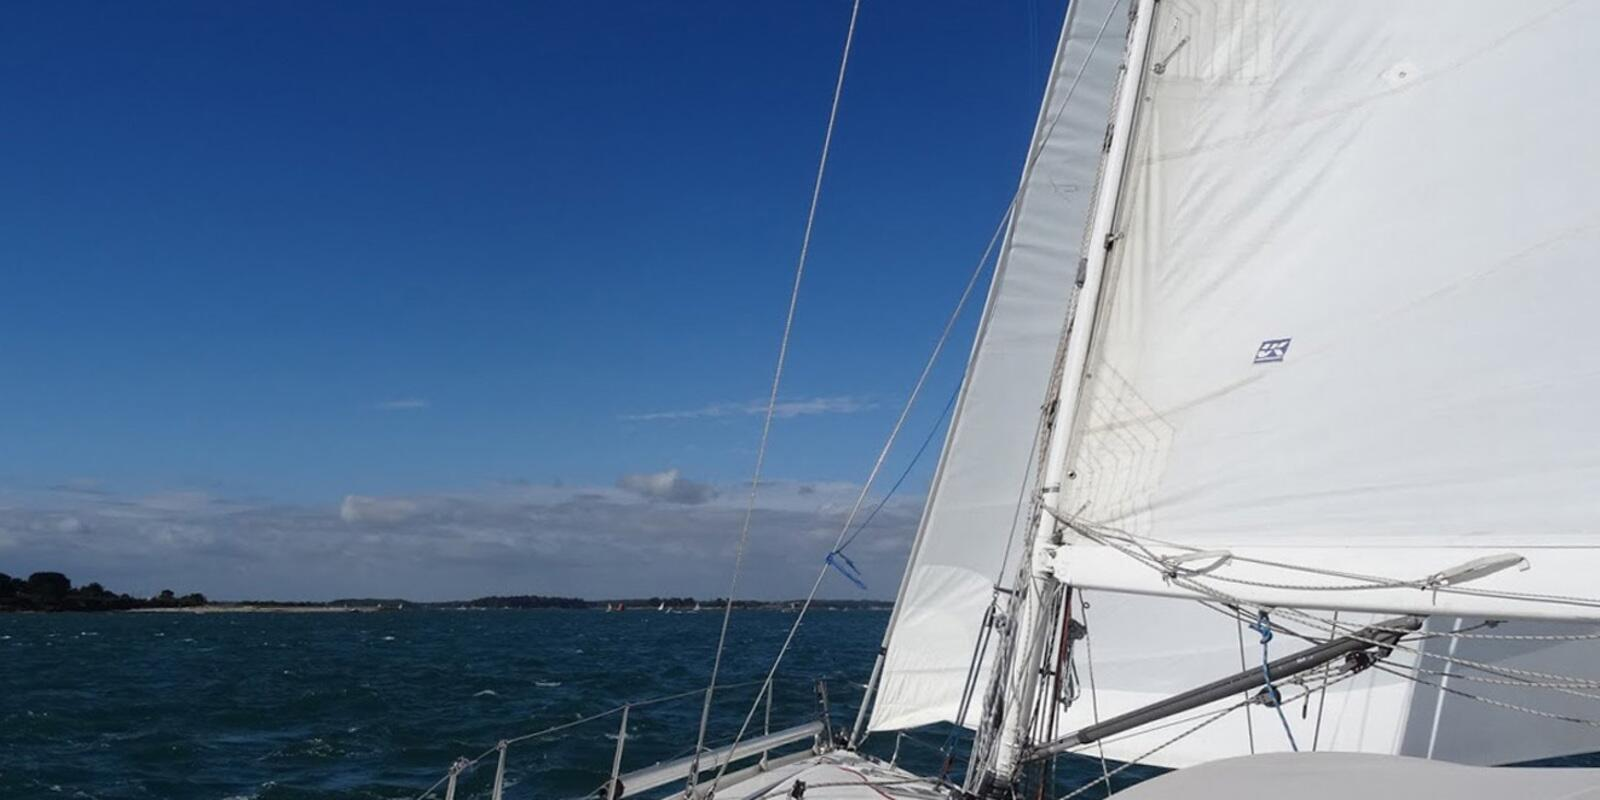 Brittany Tour  Lorient > Lorient aboard an exceptional sailboat